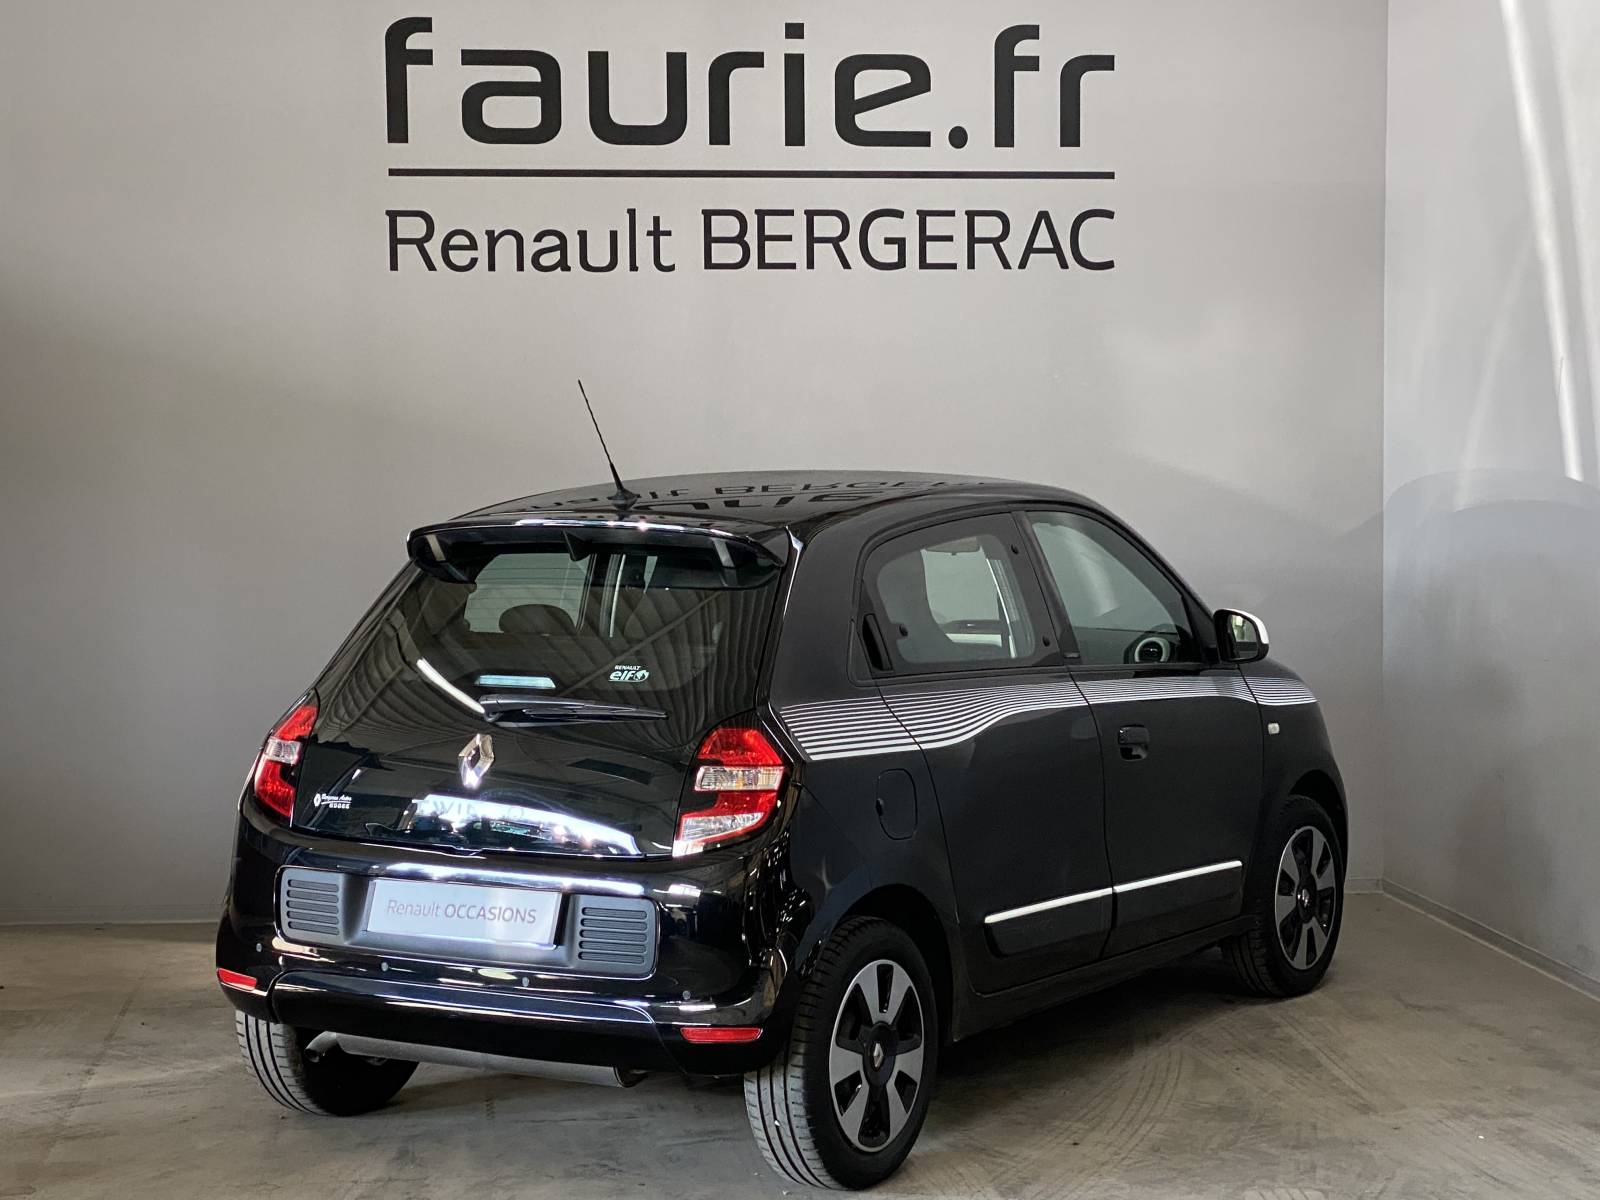 RENAULT Twingo III 0.9 TCe 90 Energy - véhicule d'occasion - Site Internet Faurie - Renault - Faurie Auto Bergerac - 24100 - Bergerac - 5